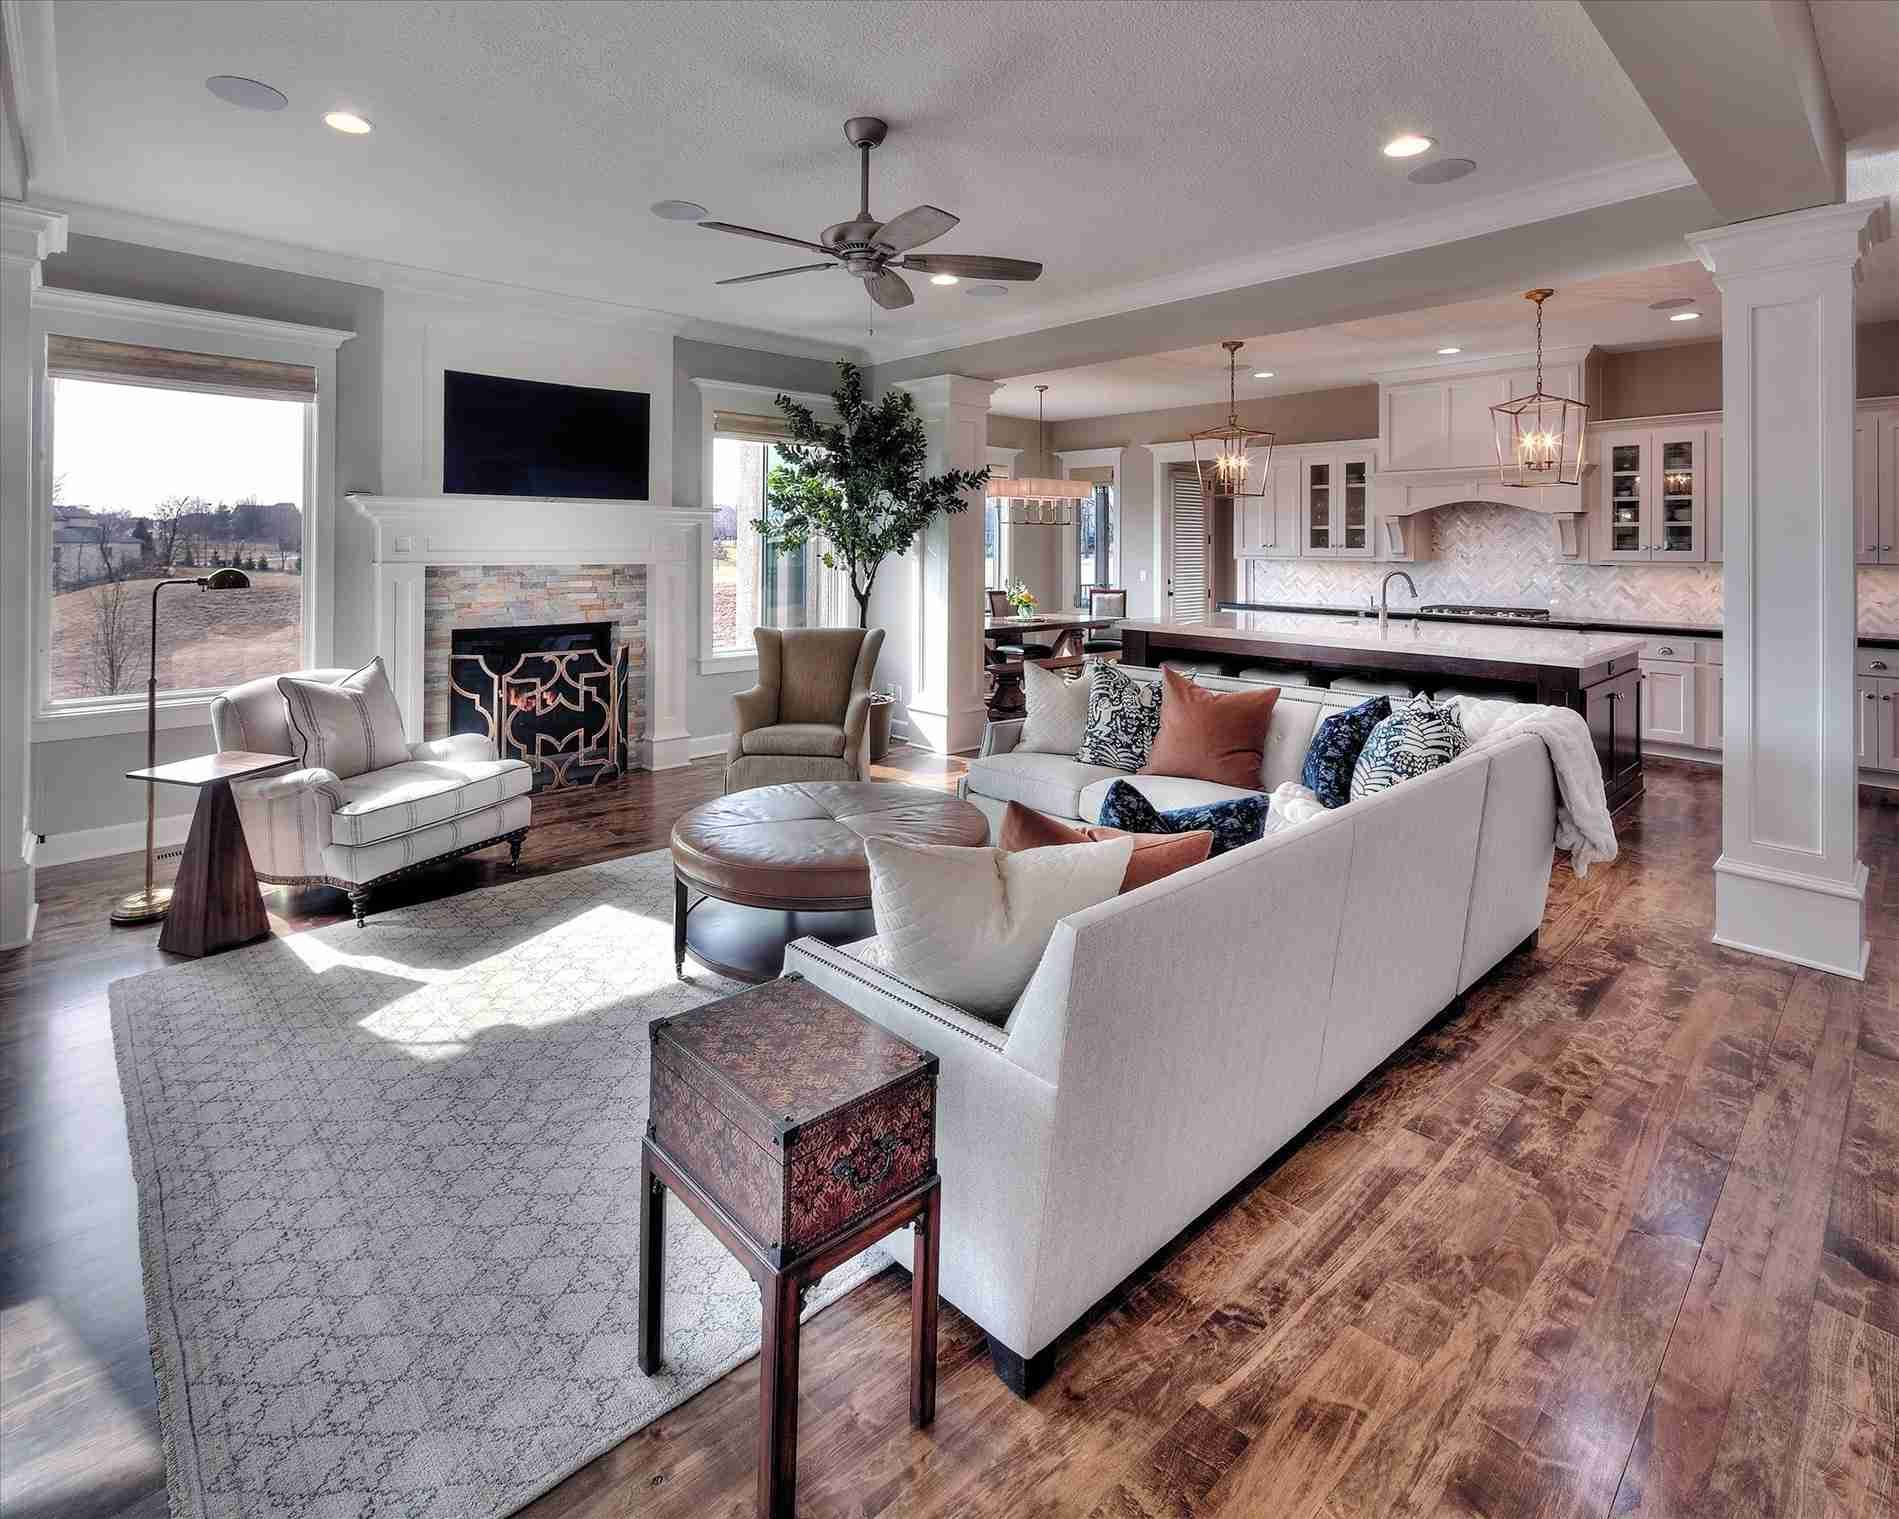 Image Result For Tv Ideas Living Room Open Floor Plan Open Concept Kitchen Living Room Living Room Floor Plans Open Floor Plan Kitchen